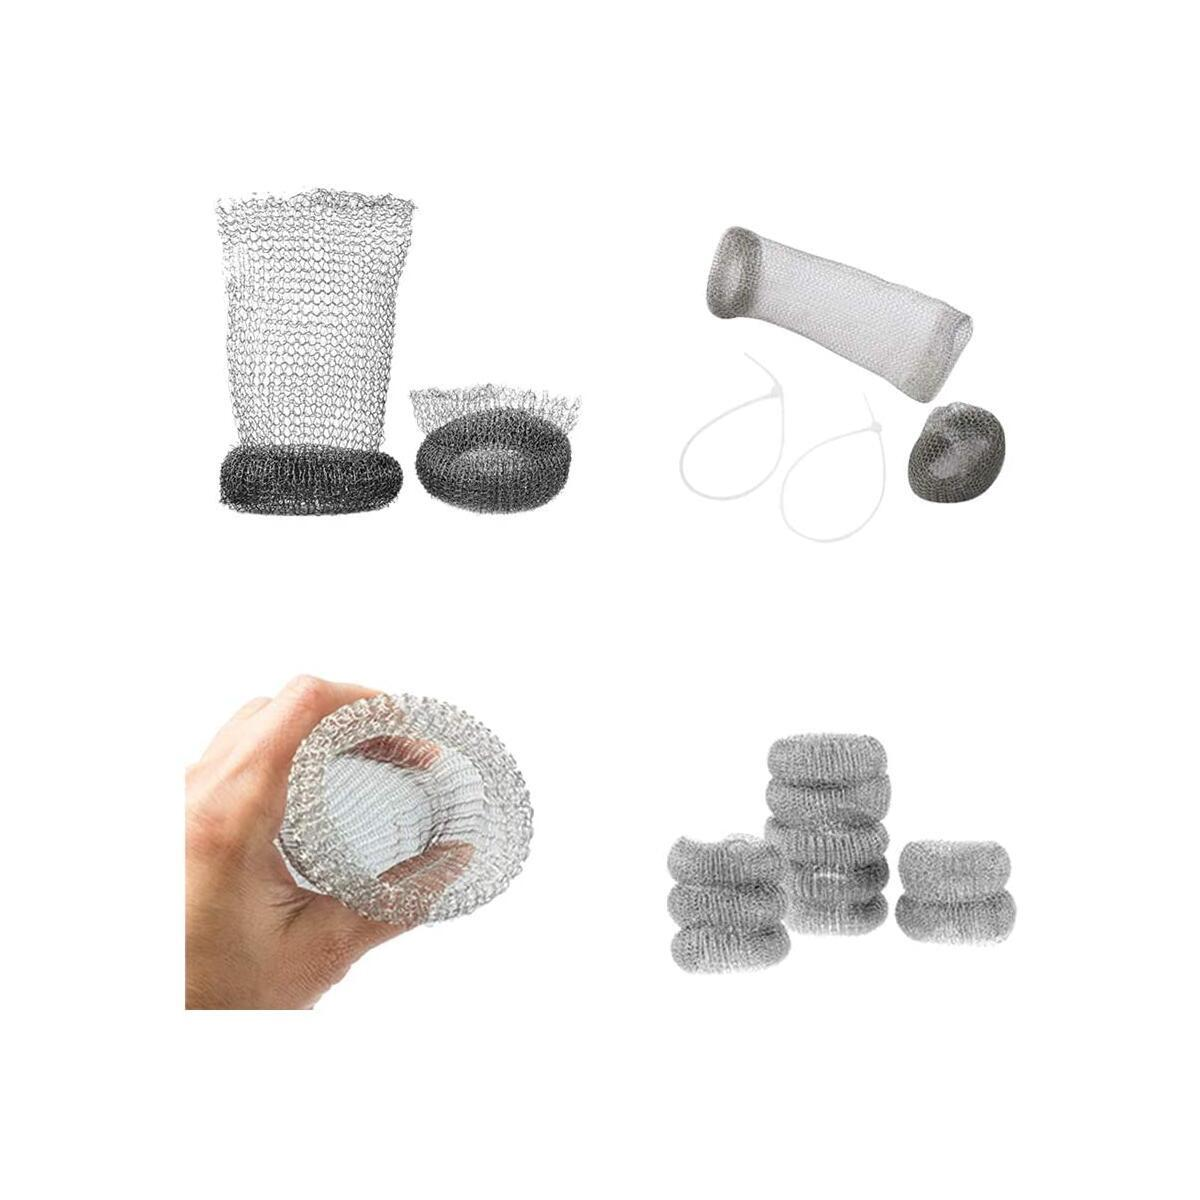 Lint Traps Washing Machine, 60 Pcs with Zip Ties, 304 Stainless Steel Snare Washer Hose Dog Hair Catcher, Never Rust